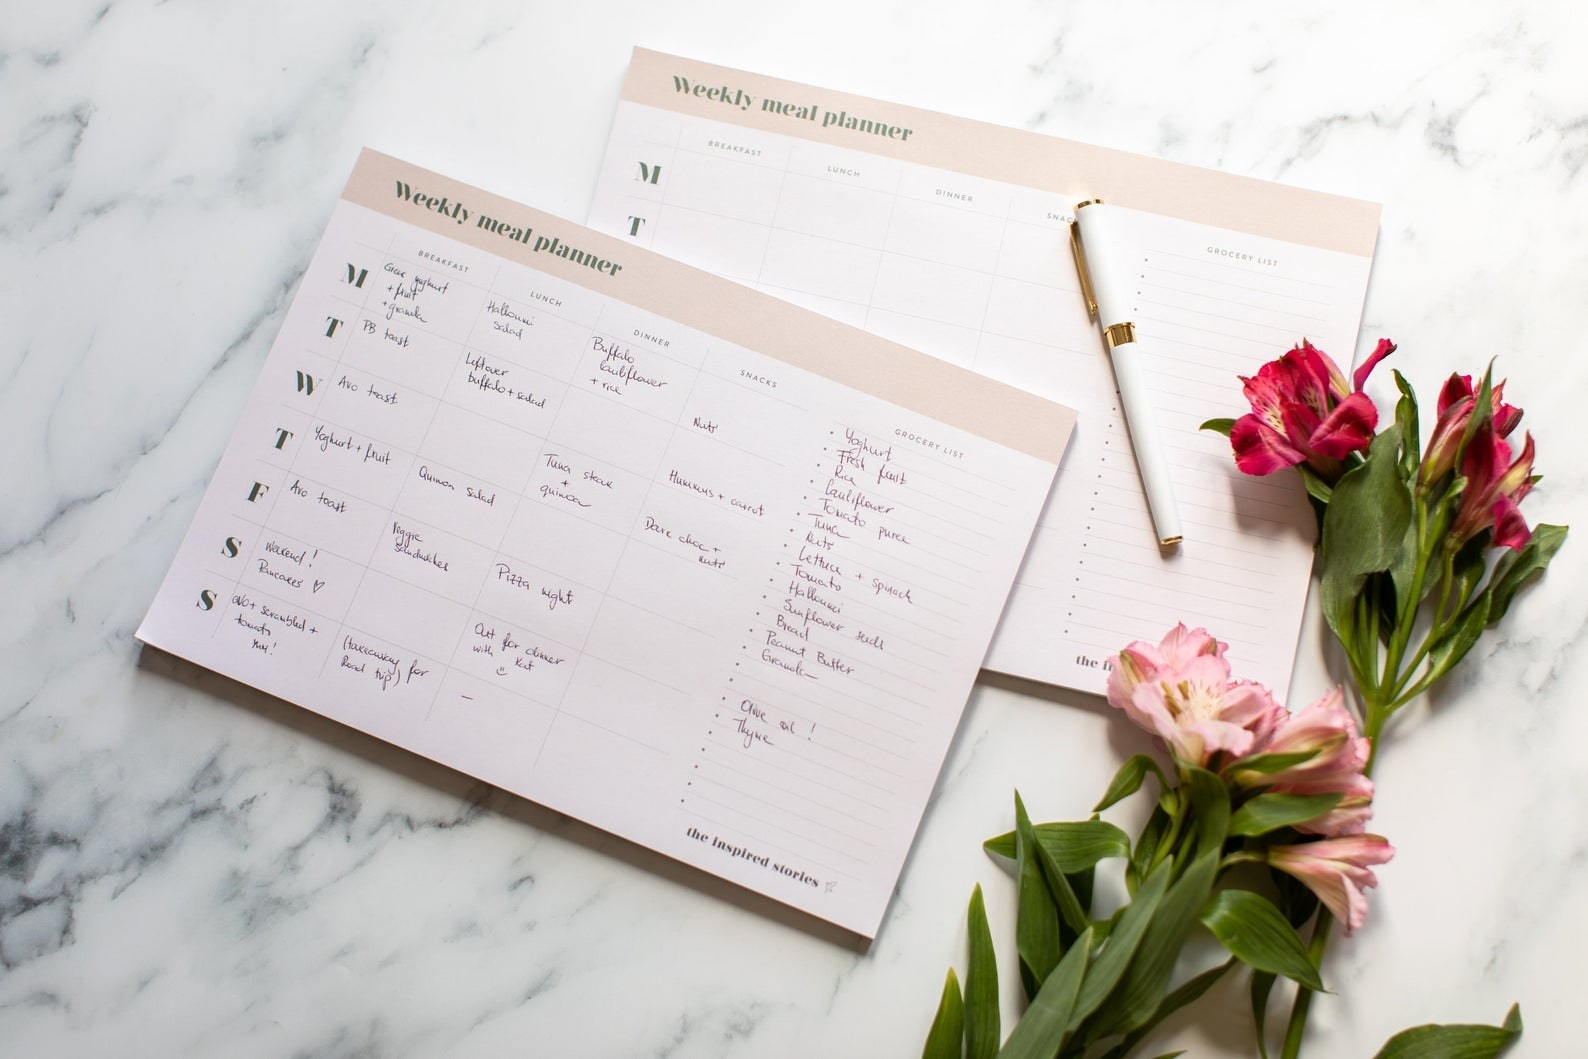 Weekly meal planner on marble table next to flowers